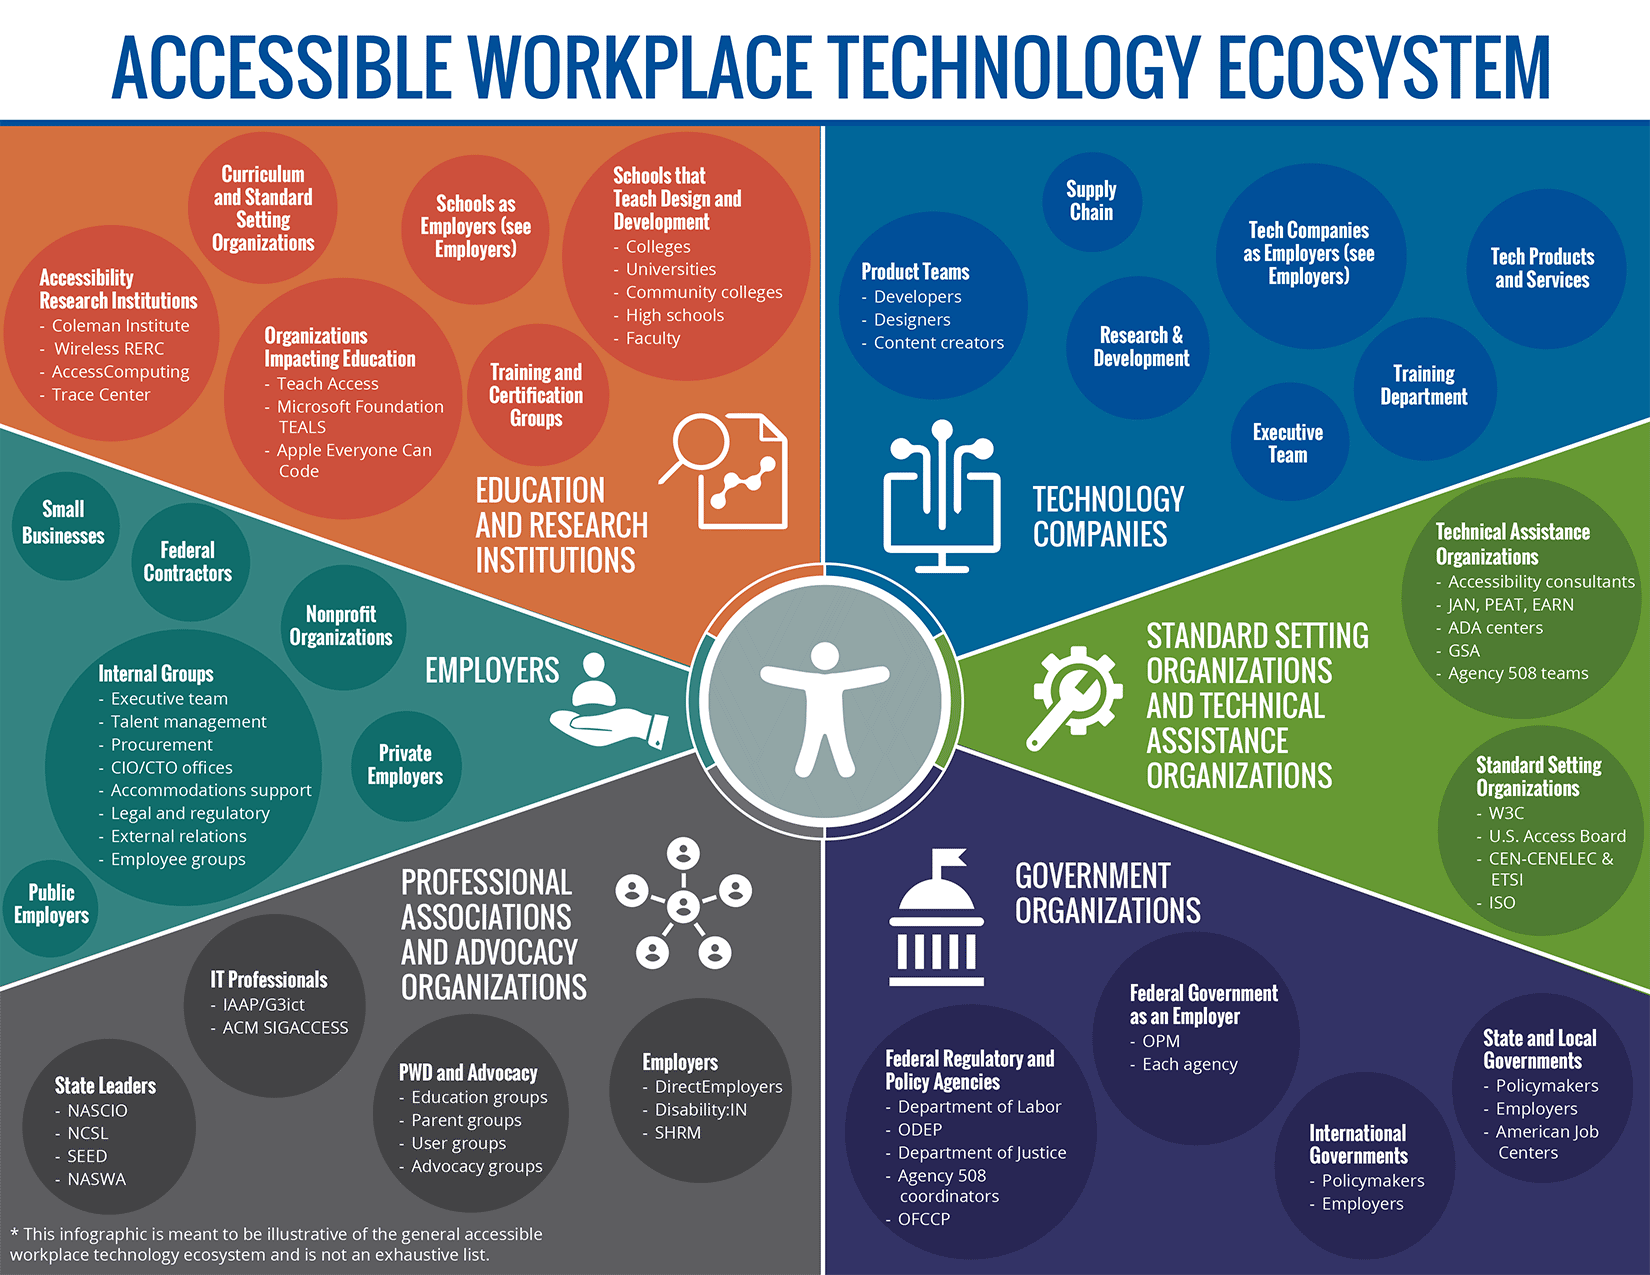 The Accessible Workplace Technology Ecosystem Graphic